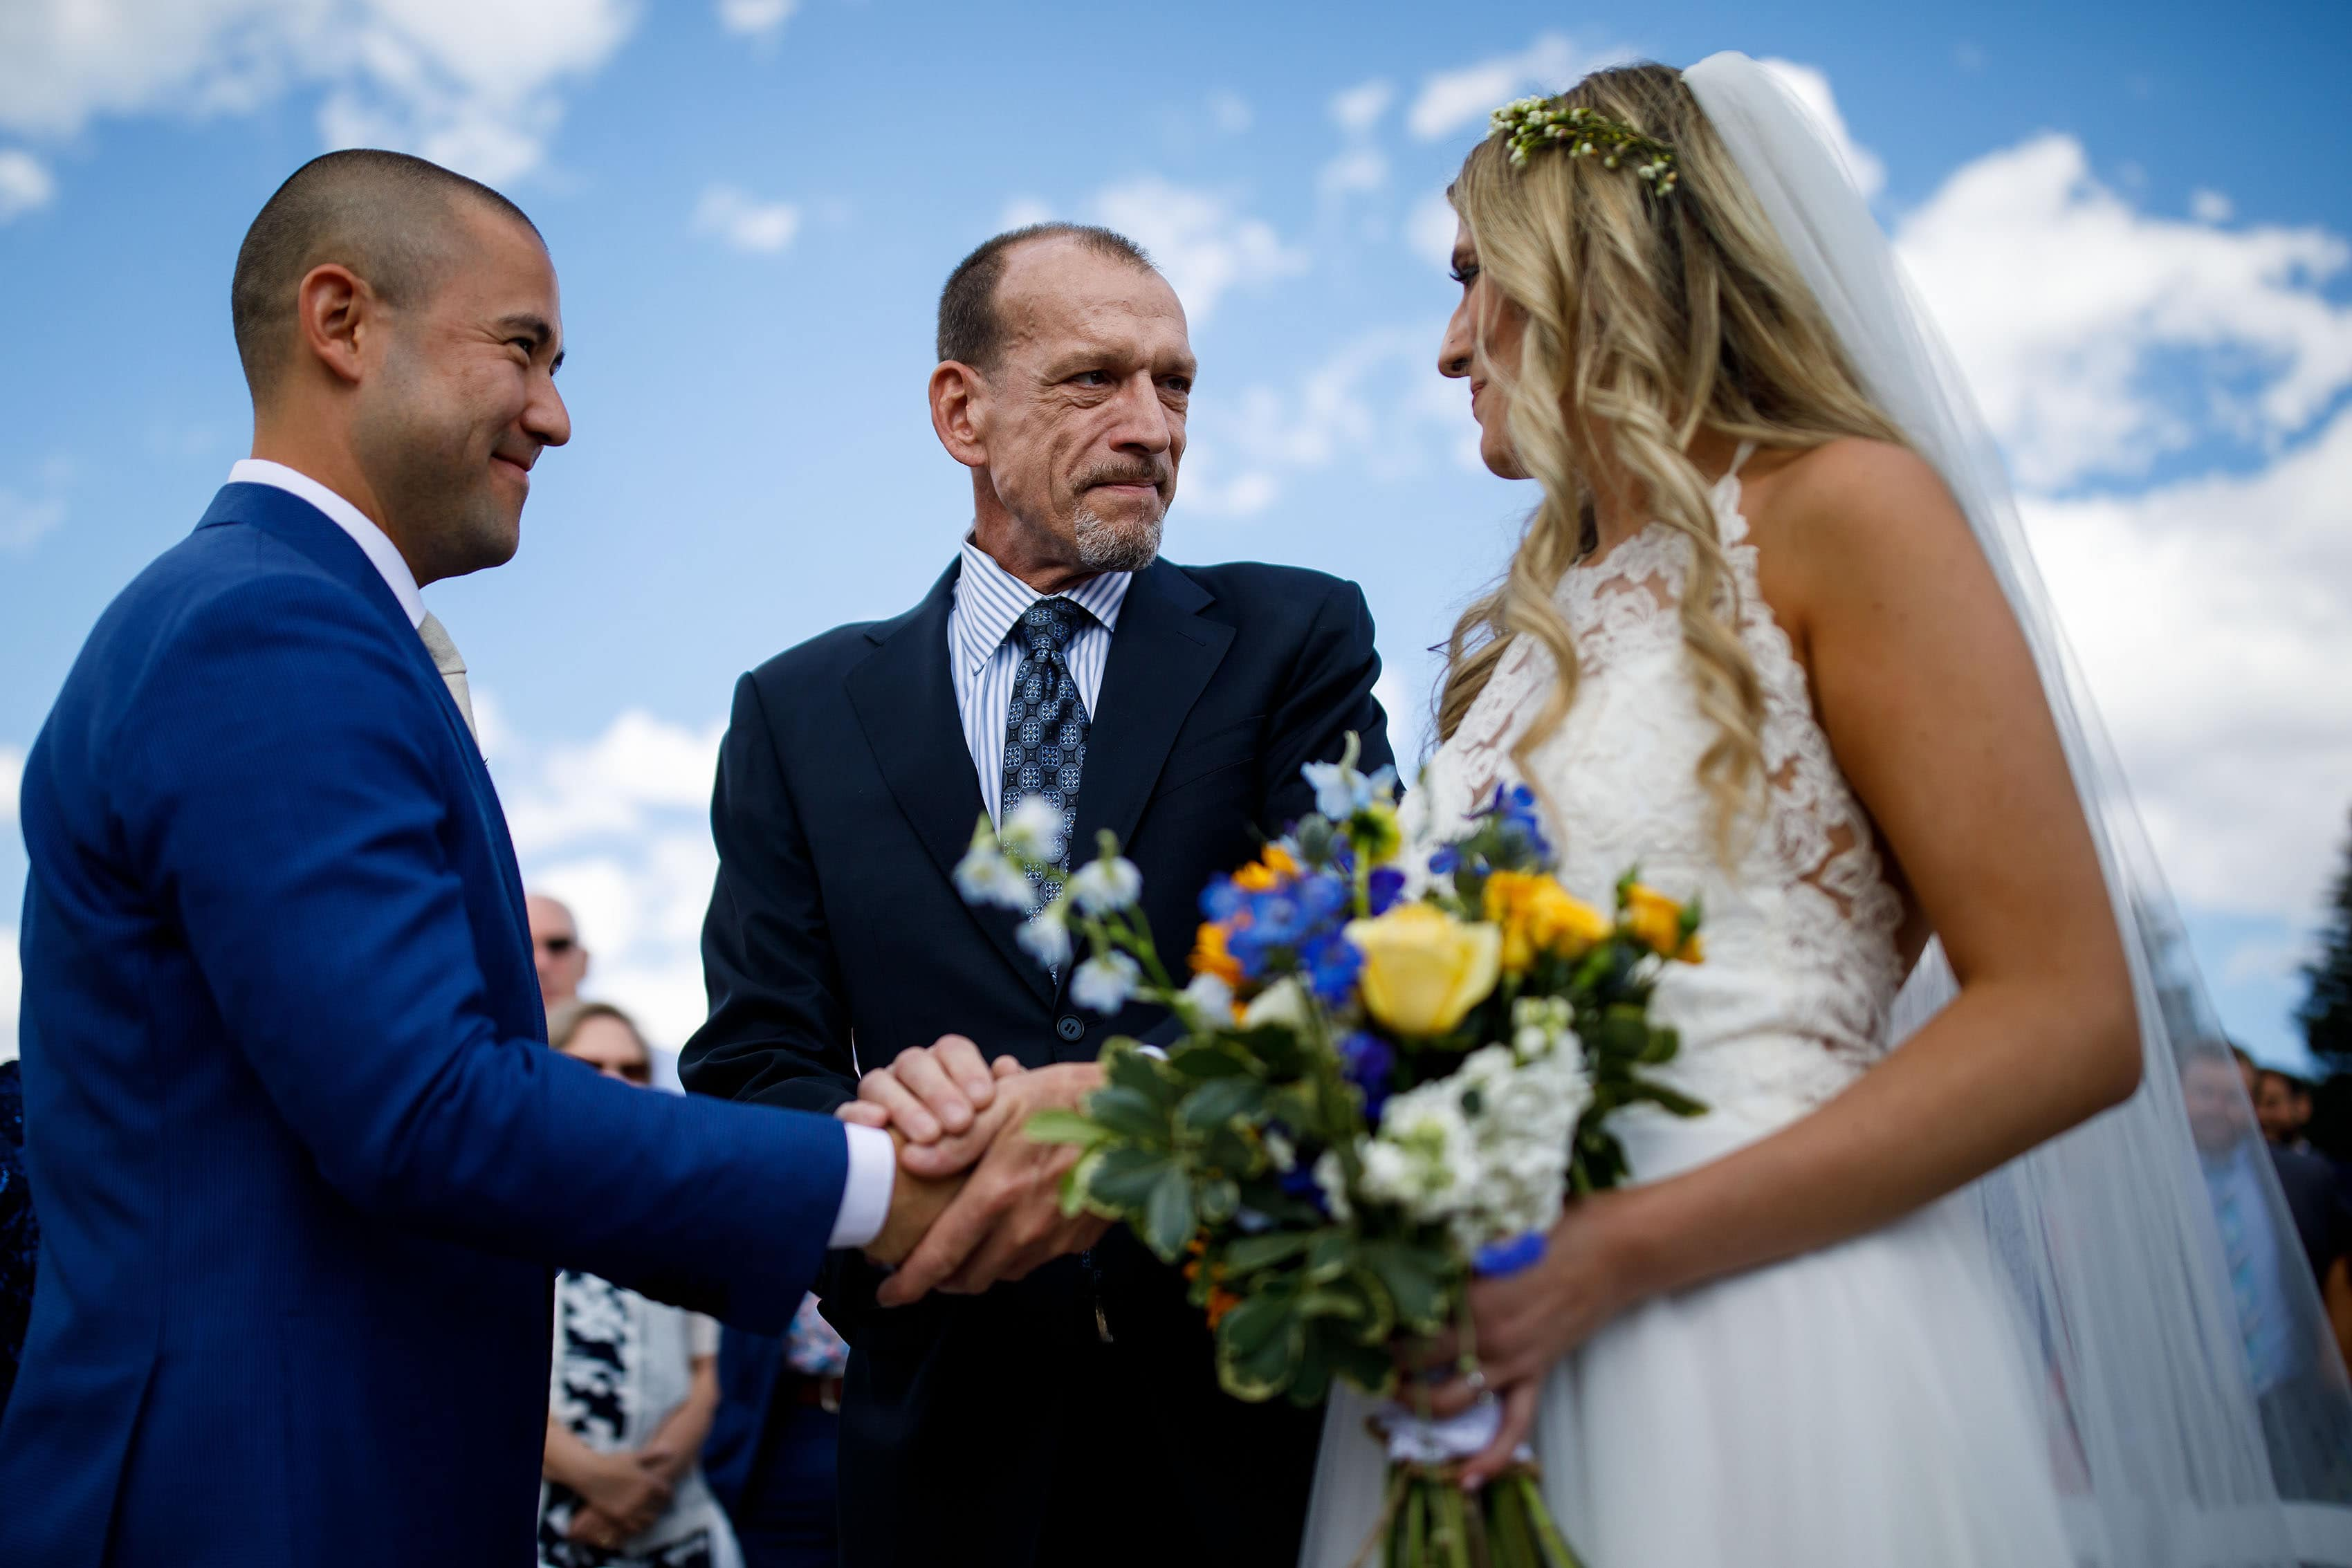 The father of the bride gives away his daughter at Deer Creek Valley Ranch